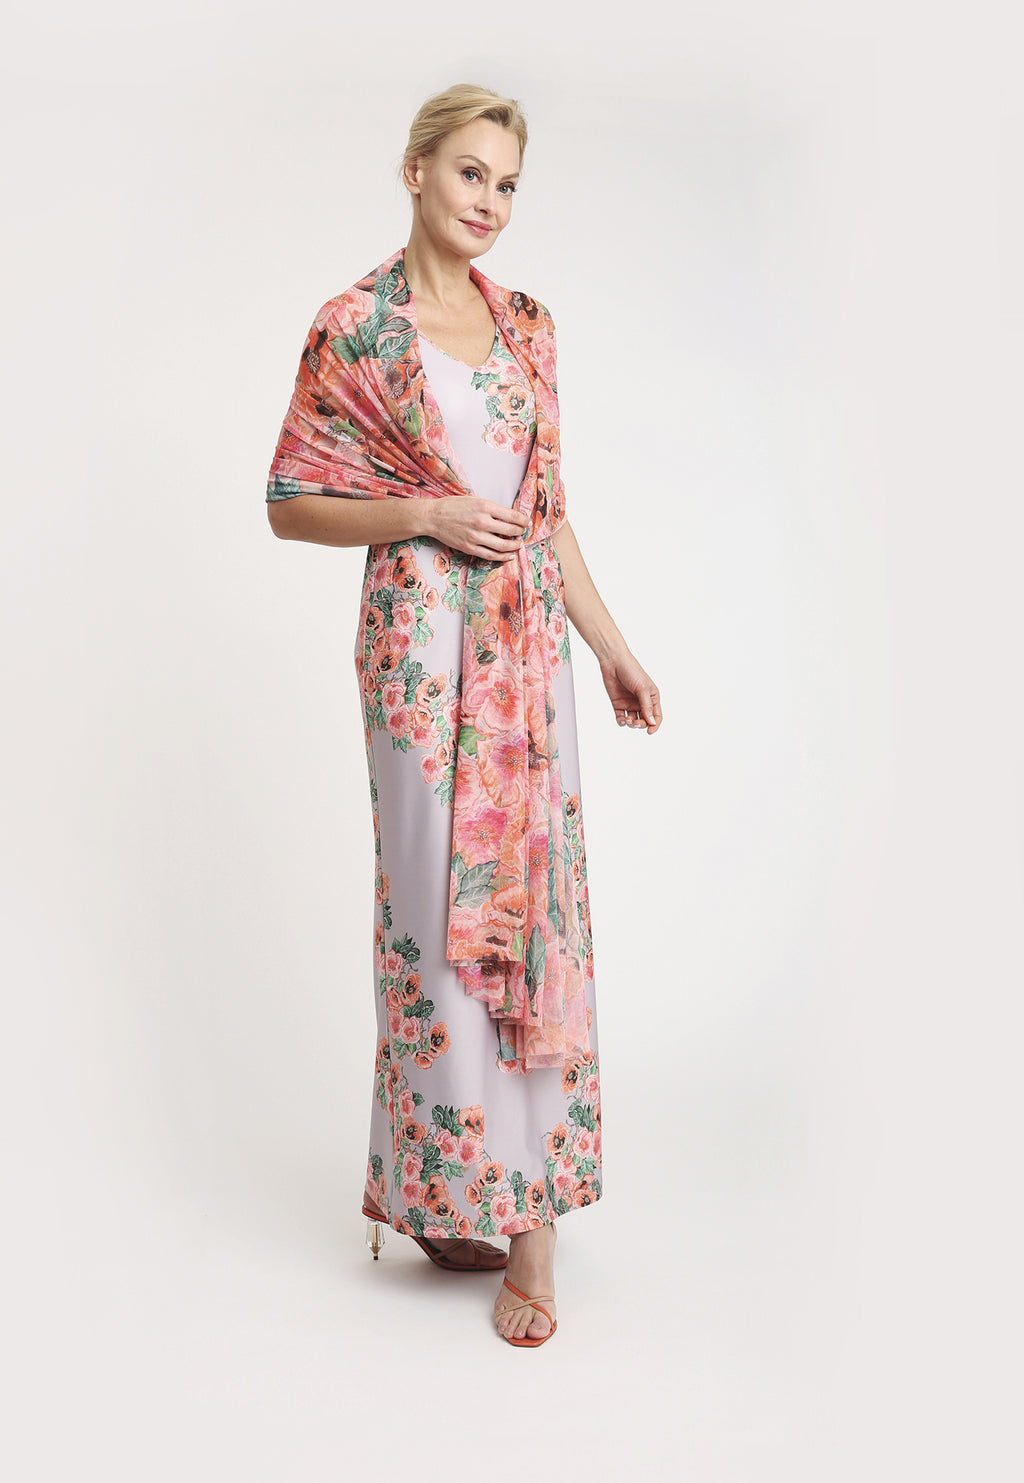 Gala Shawl in Taj paired with matching long Lavinia Dress front view